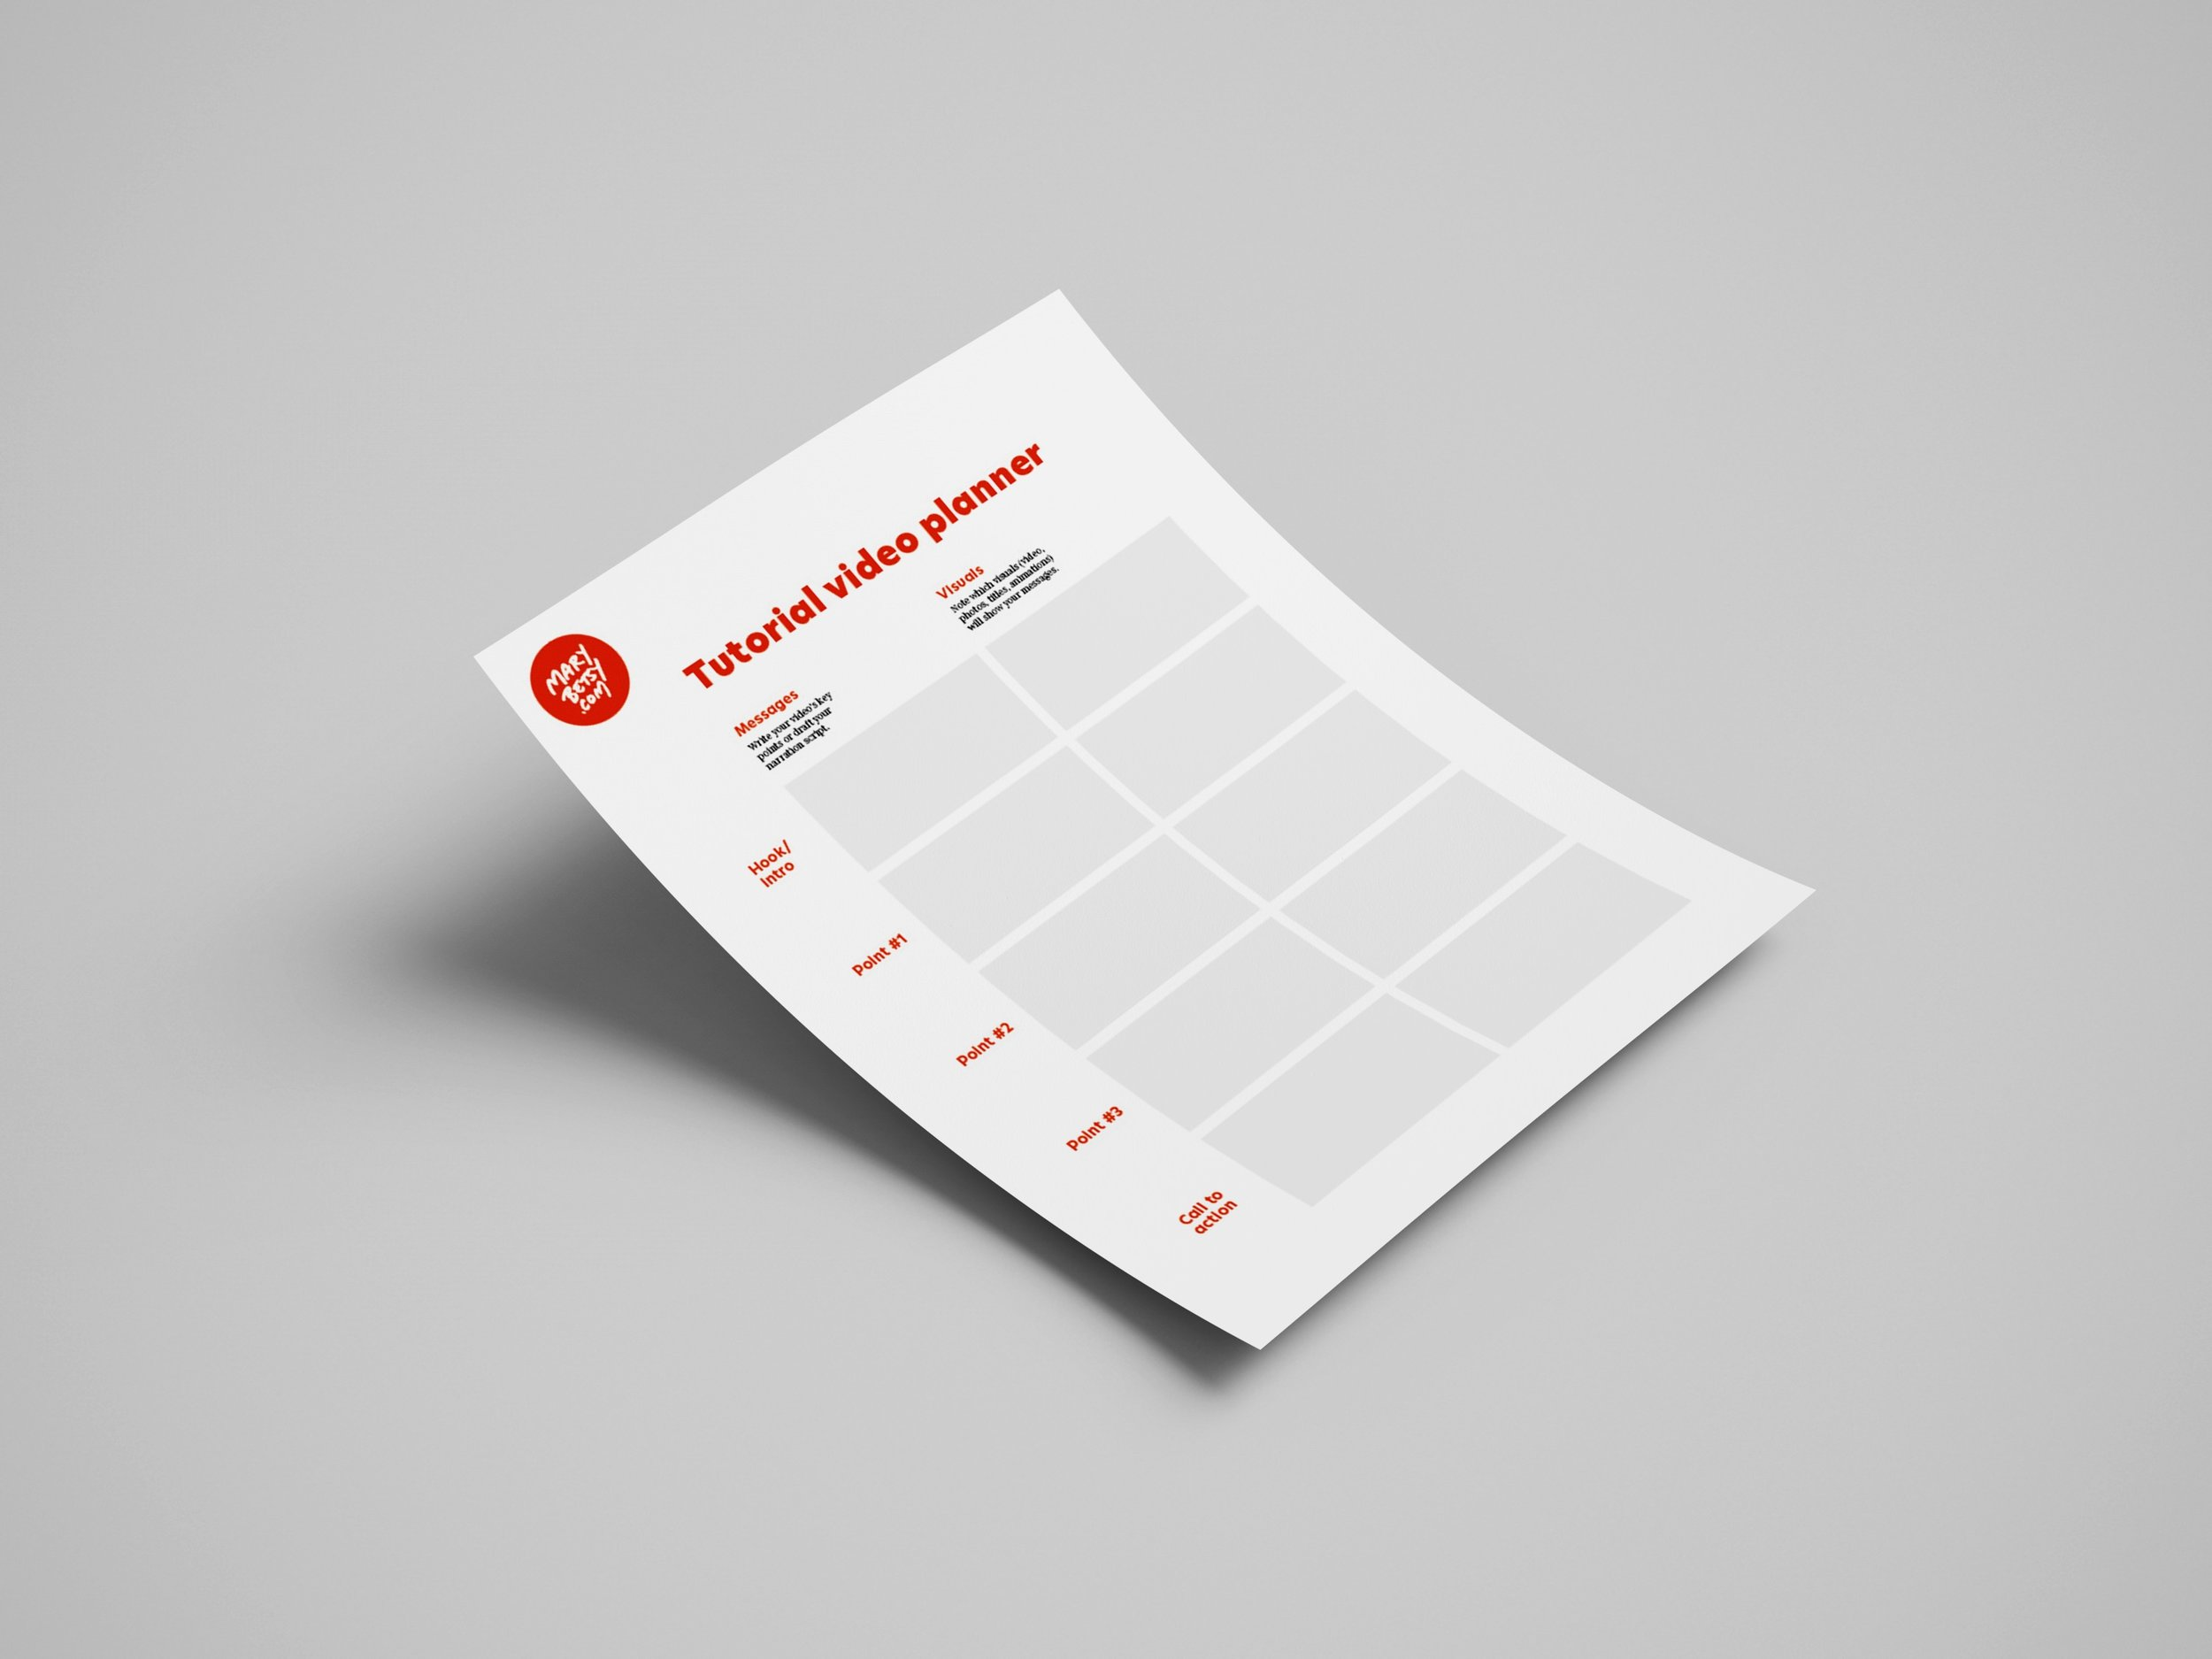 Tutorial video planner mockup 01.jpg